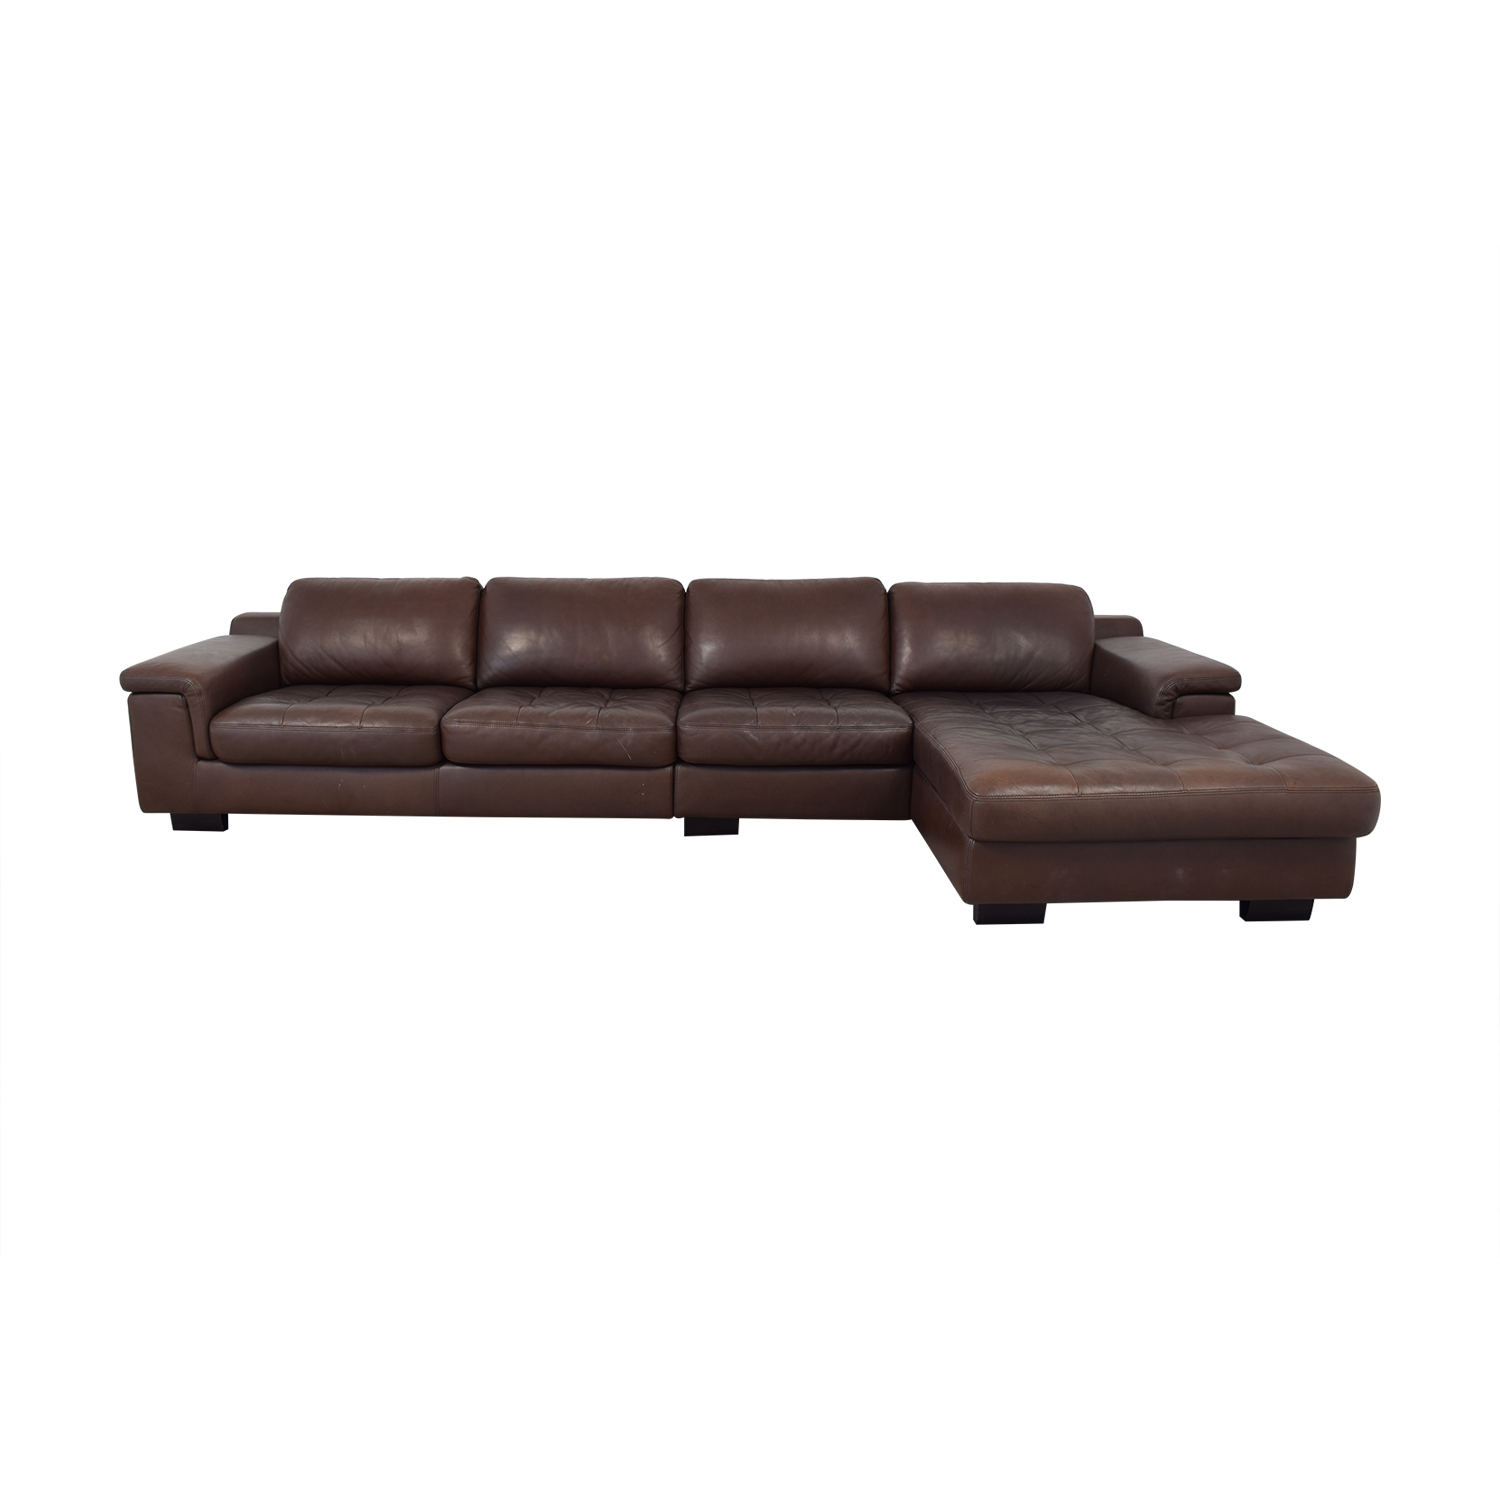 Willi Schillig Ecksofa Longlife Leder 53 Off W Schillig W Schillig Leather Sectional And Ottoman